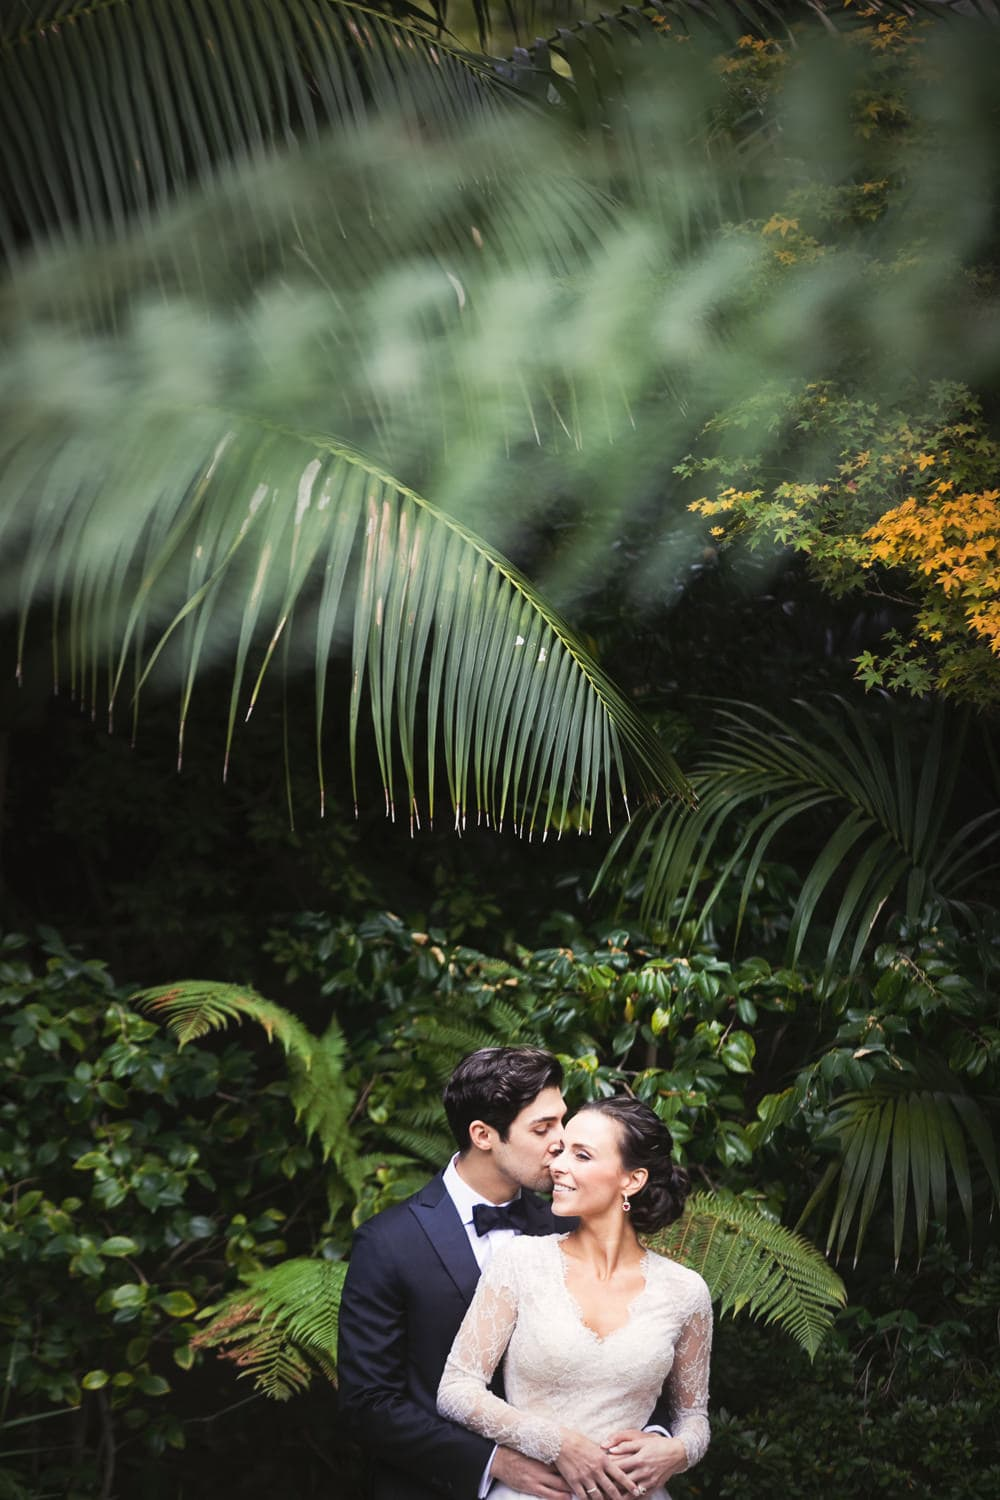 Color wedding photo by the Hotel Bel-Air pond